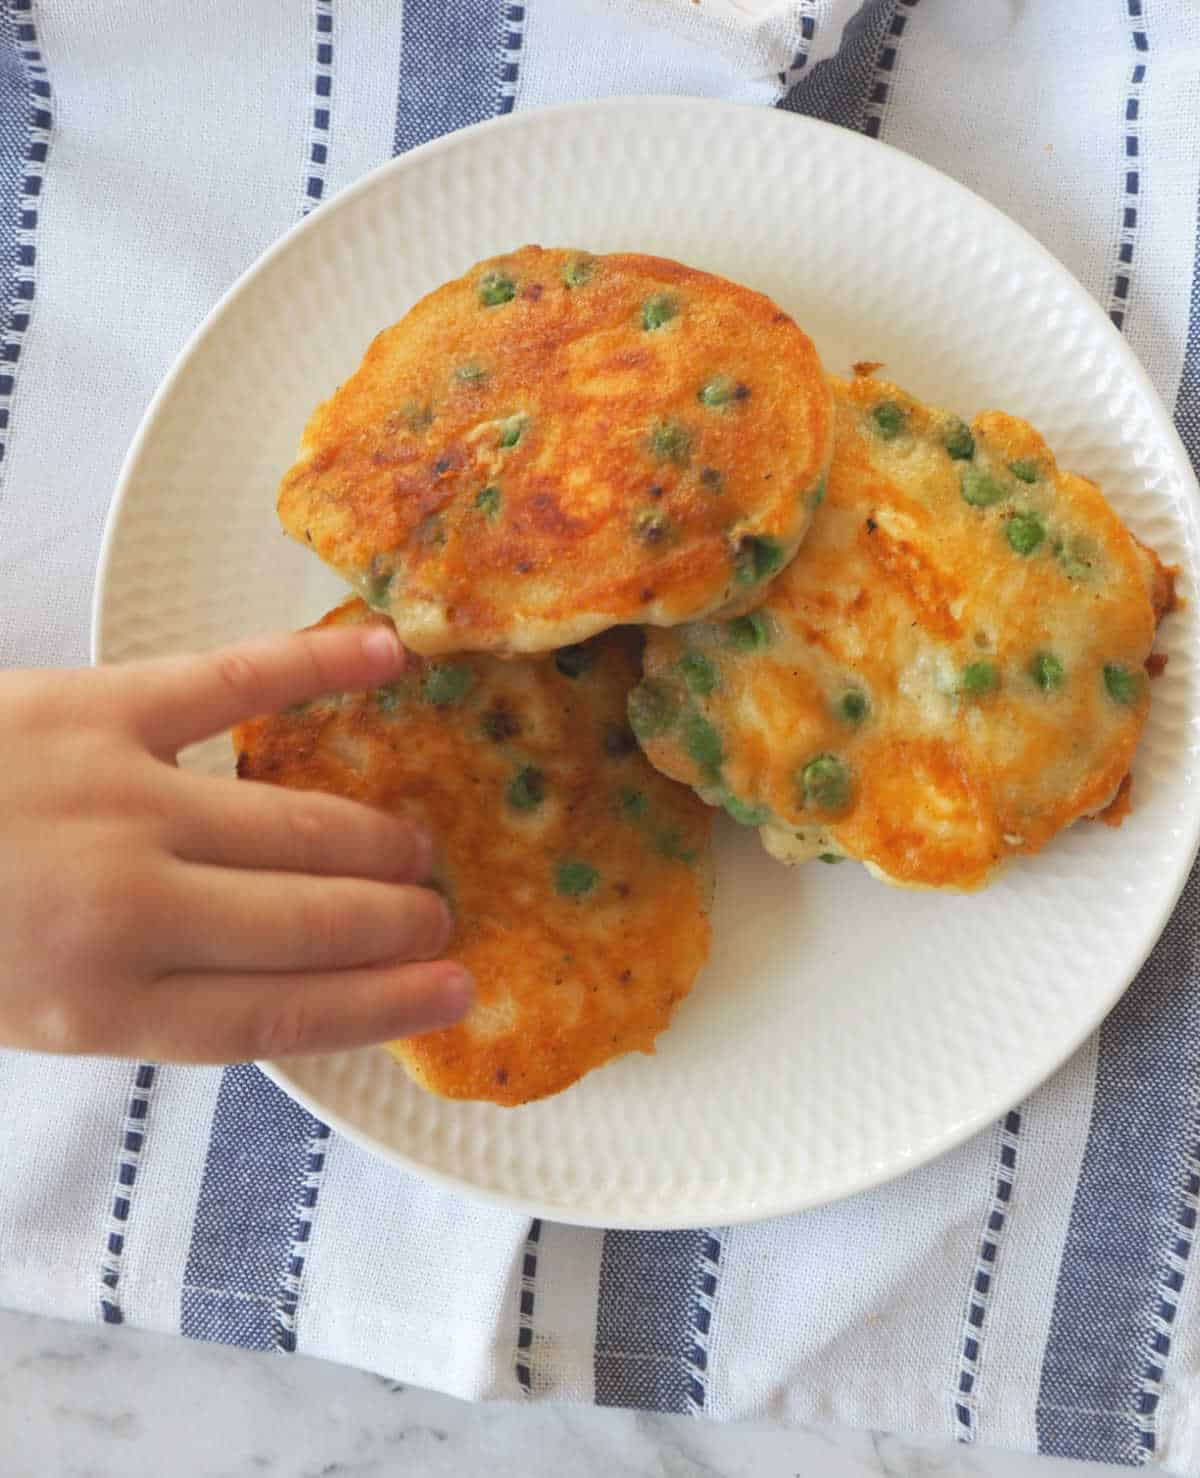 Child reaching for a pea fritter on a white plate